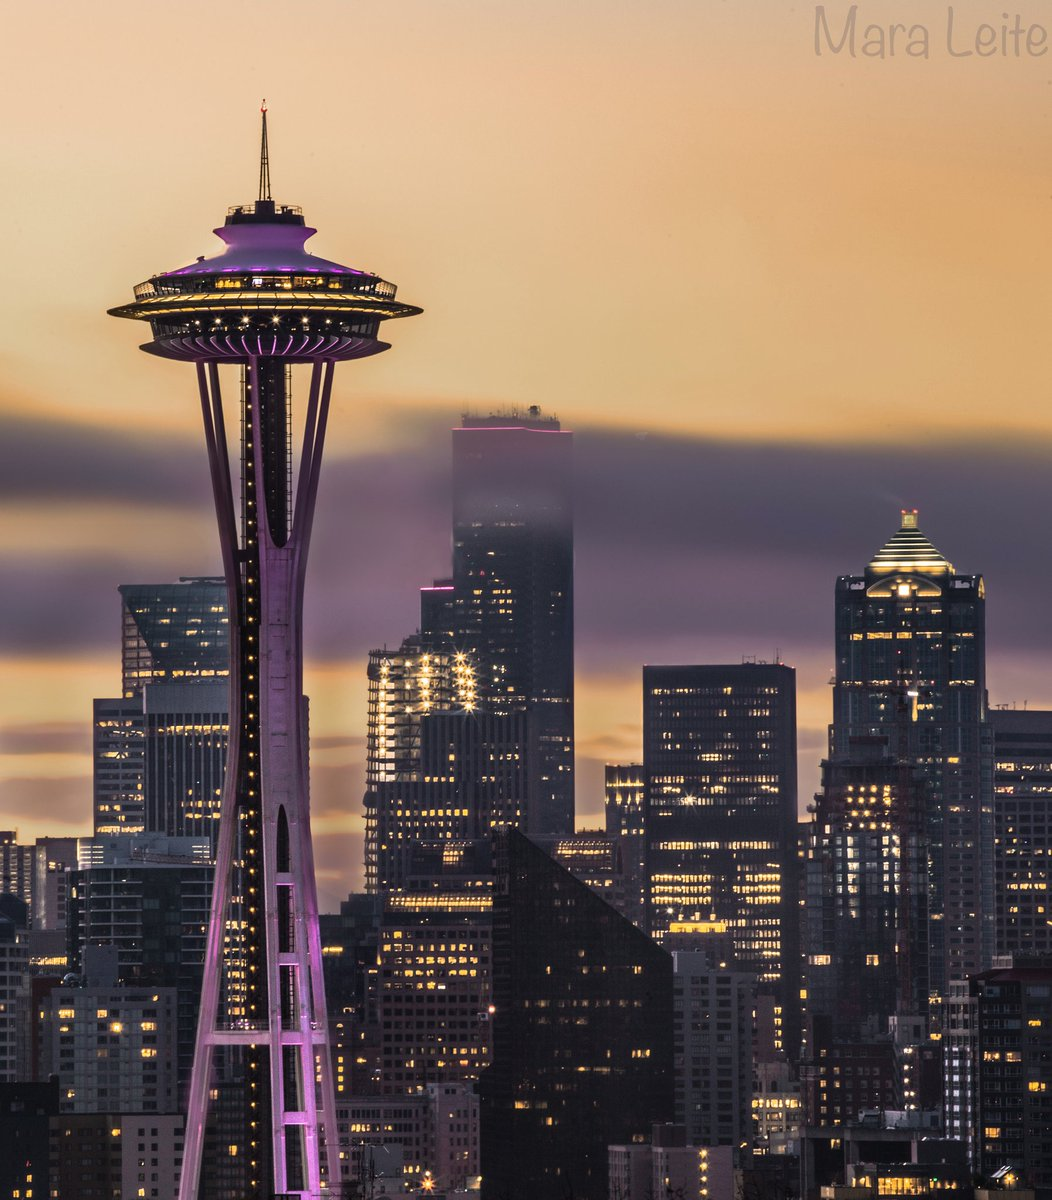 Seattle's Space Needle dressed in purple and gold for the Huskies!  Thanks to @TheMNVL for sharing